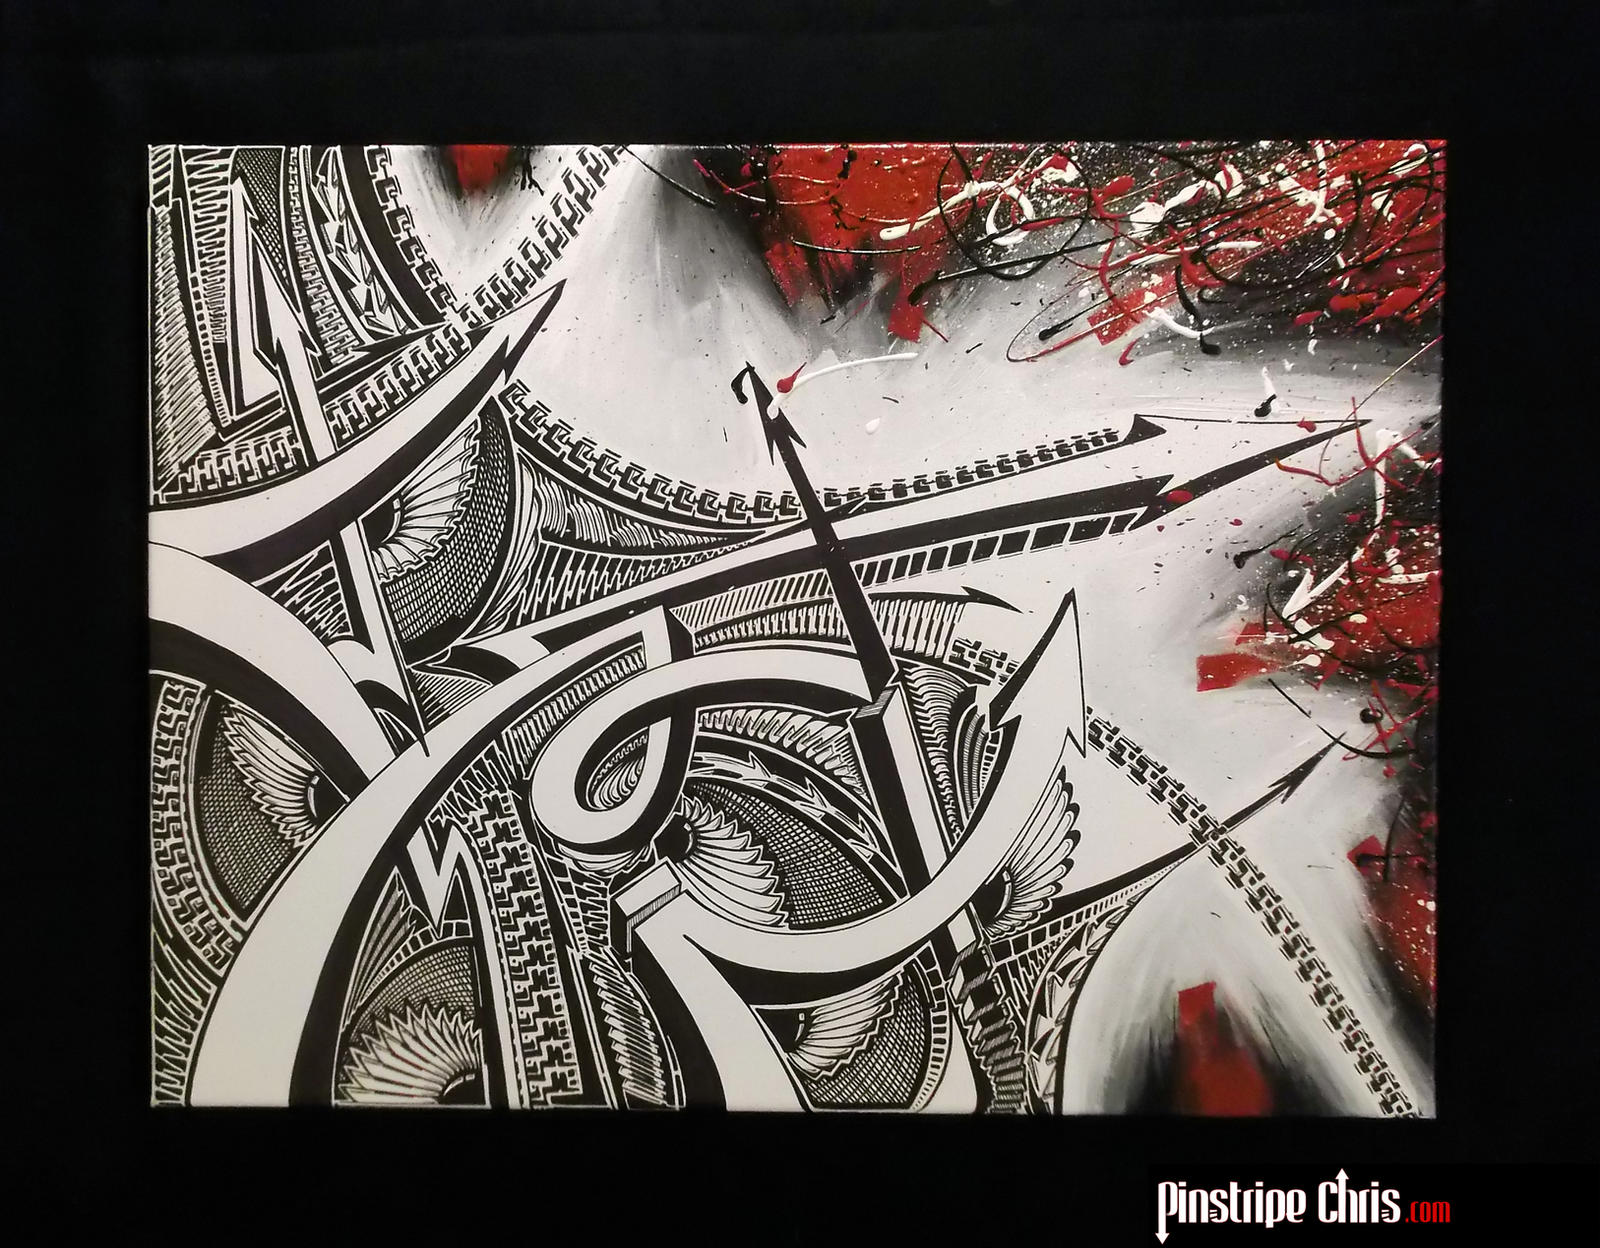 The Sharpie Vs Acrylic Battle by PinstripeChris